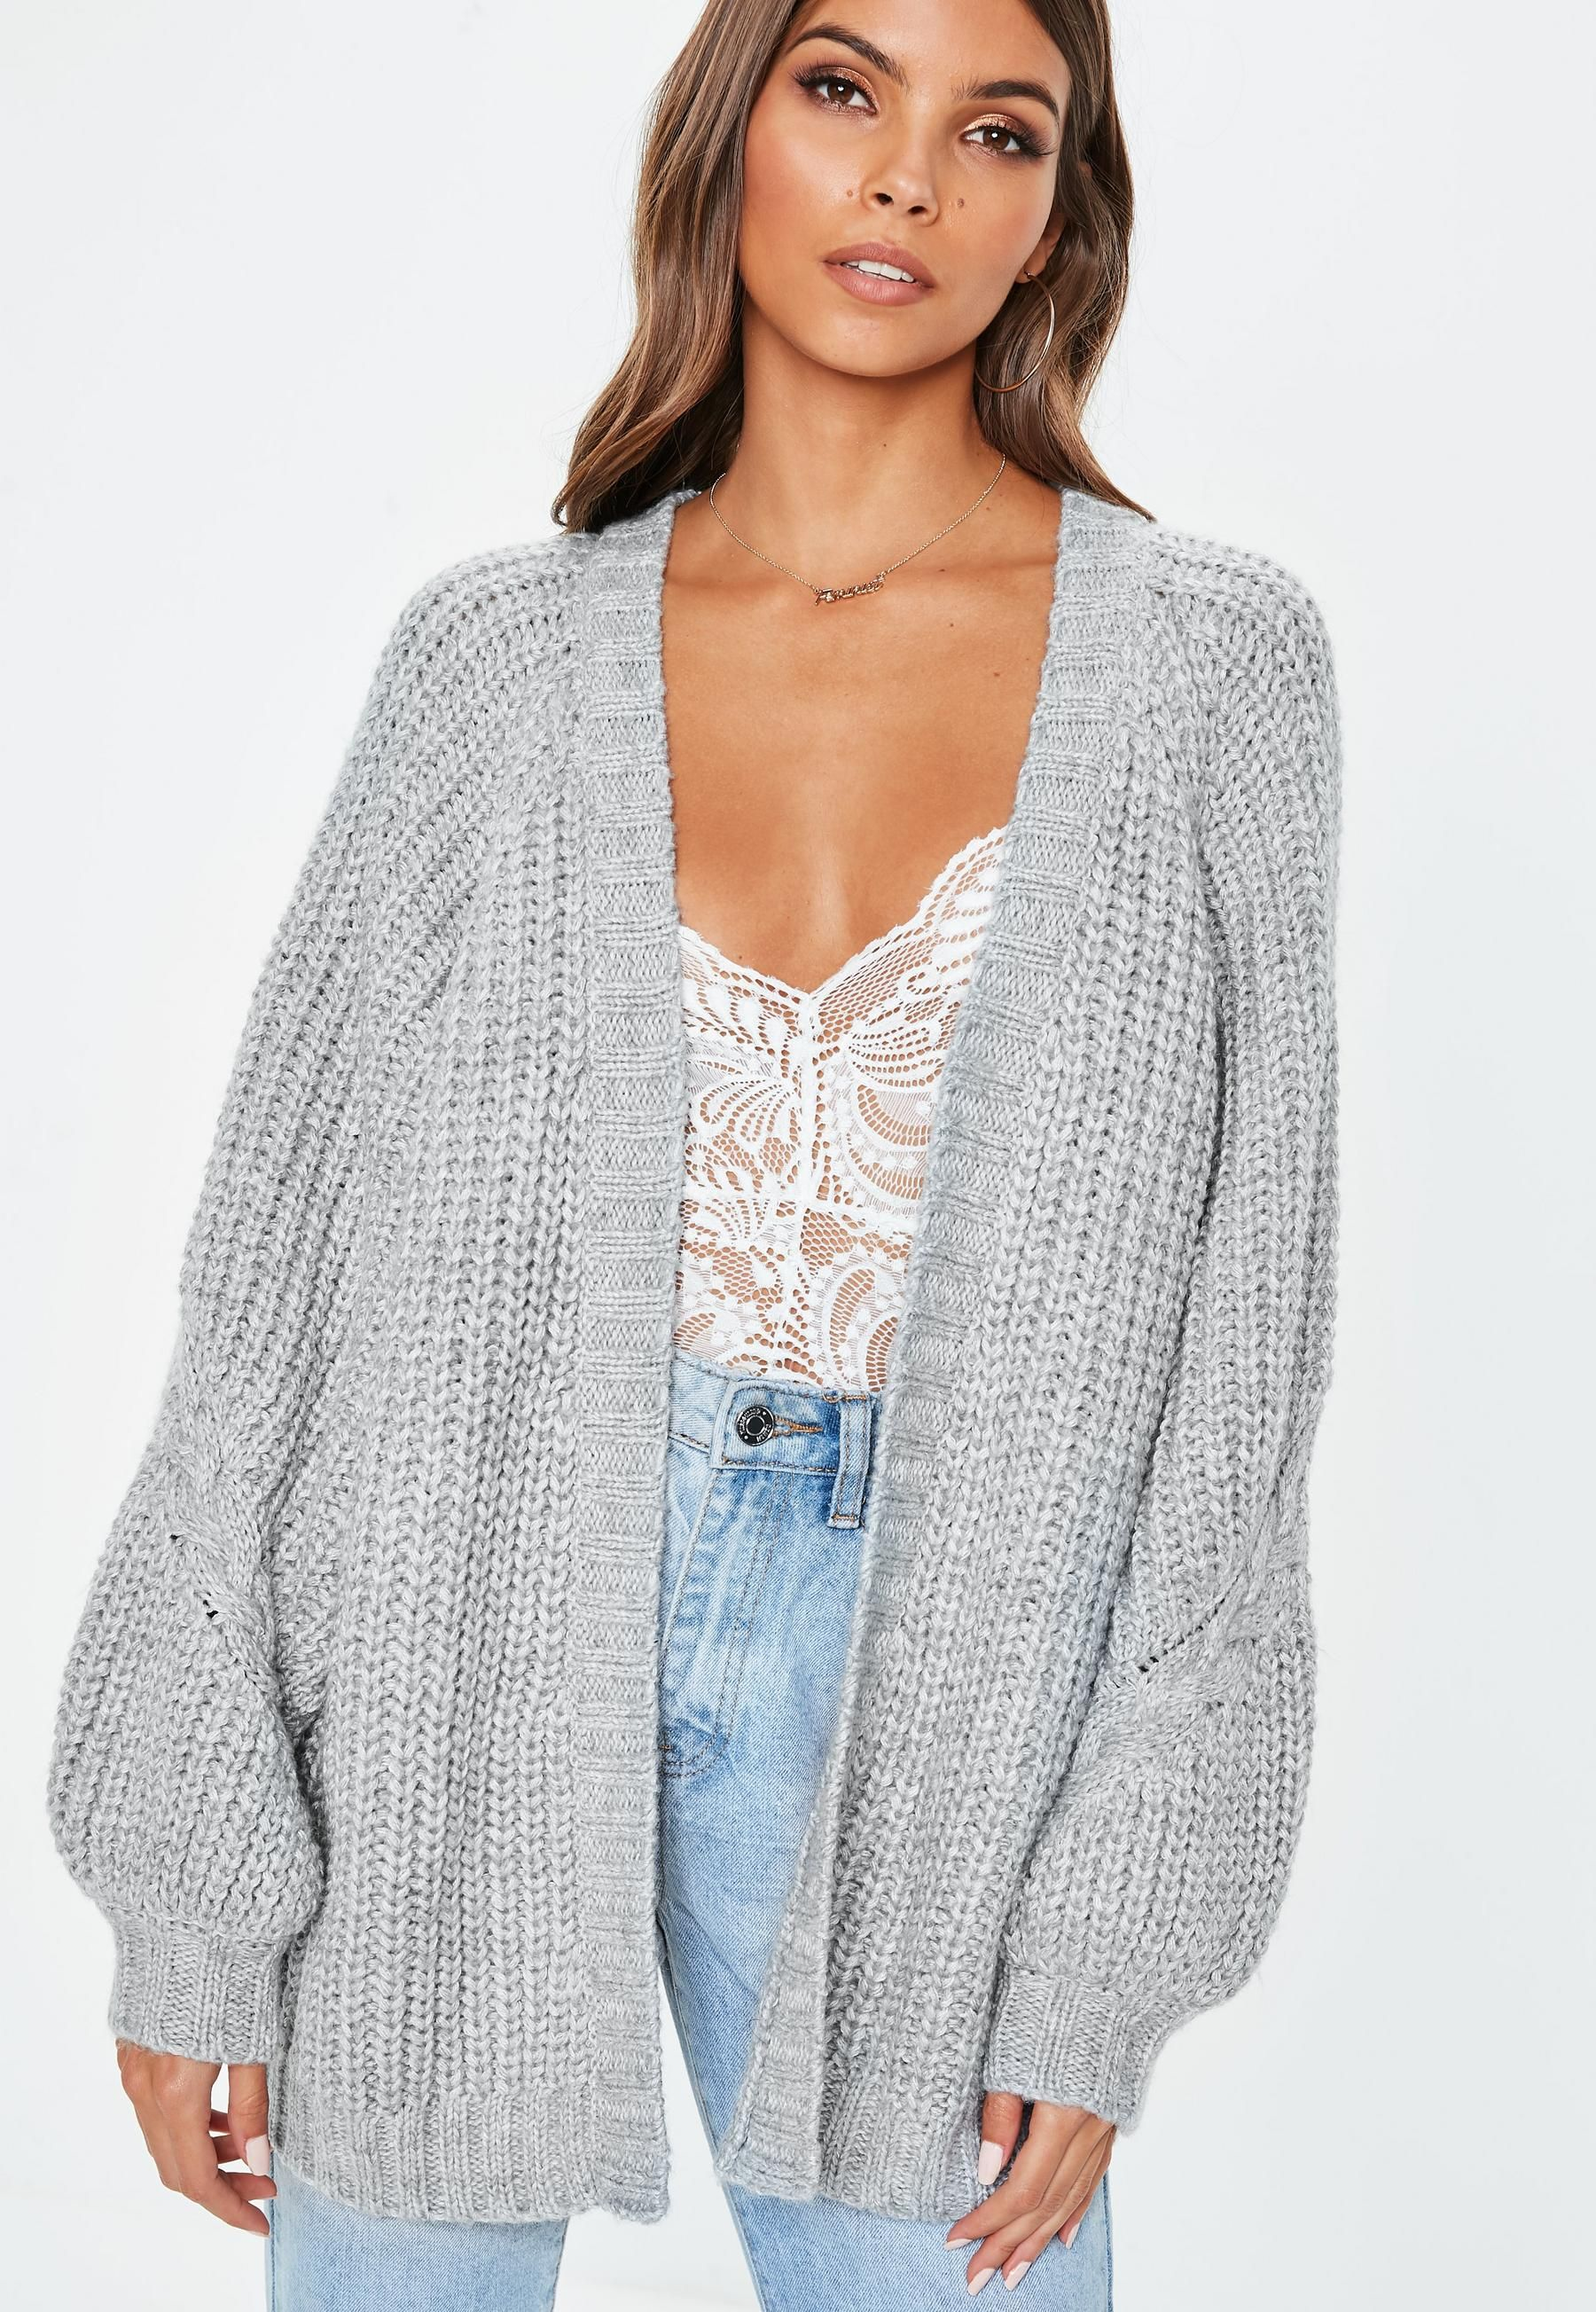 c7cf0c76d197eb Grey Oversized Batwing Cable Knitted Cardigan